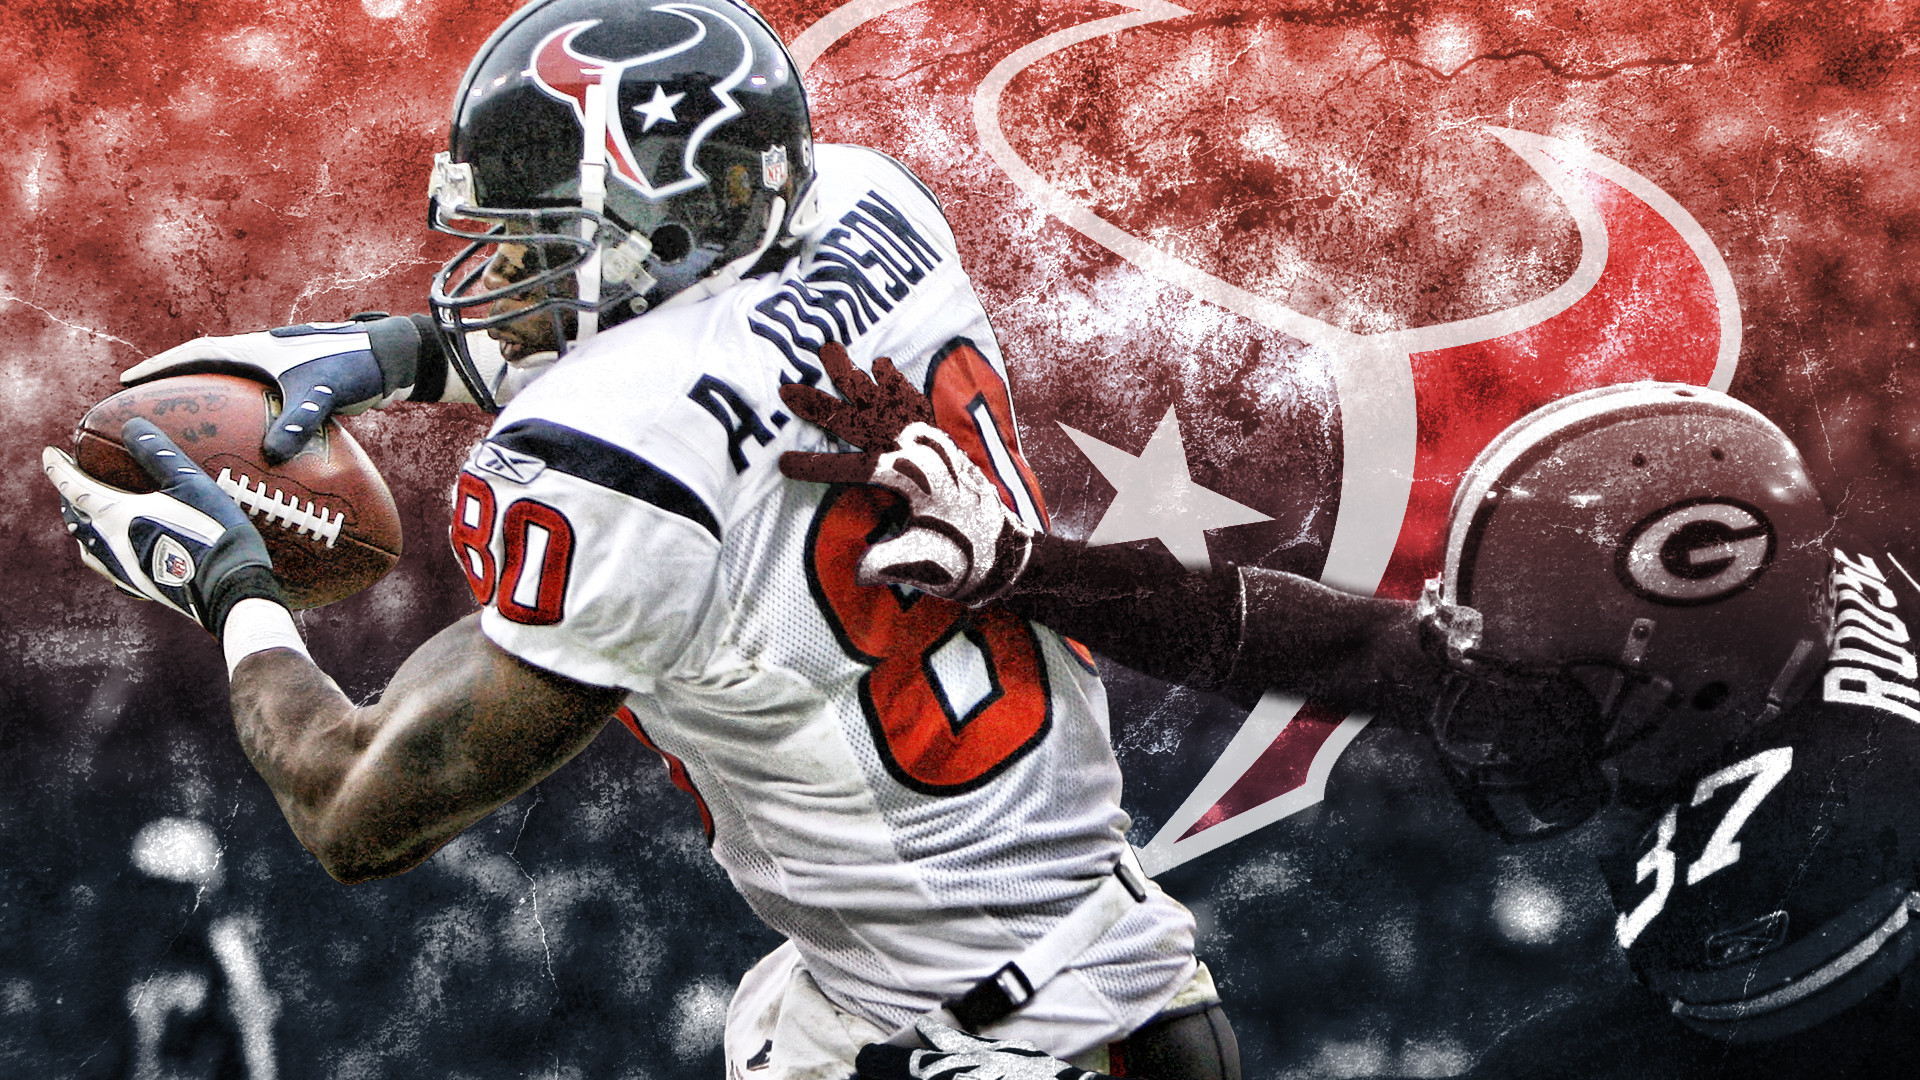 cool nfl players wallpapers (66+ images)